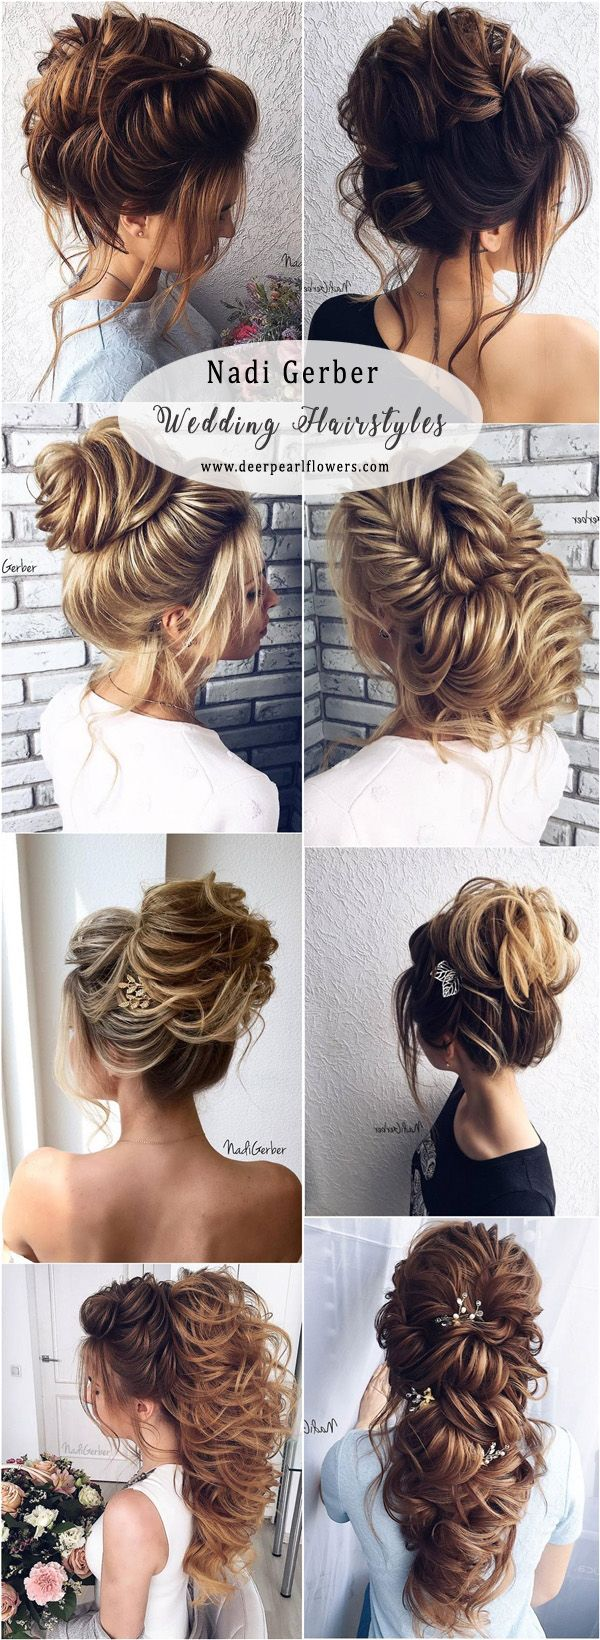 best long wedding hairstyles from top hairstylists